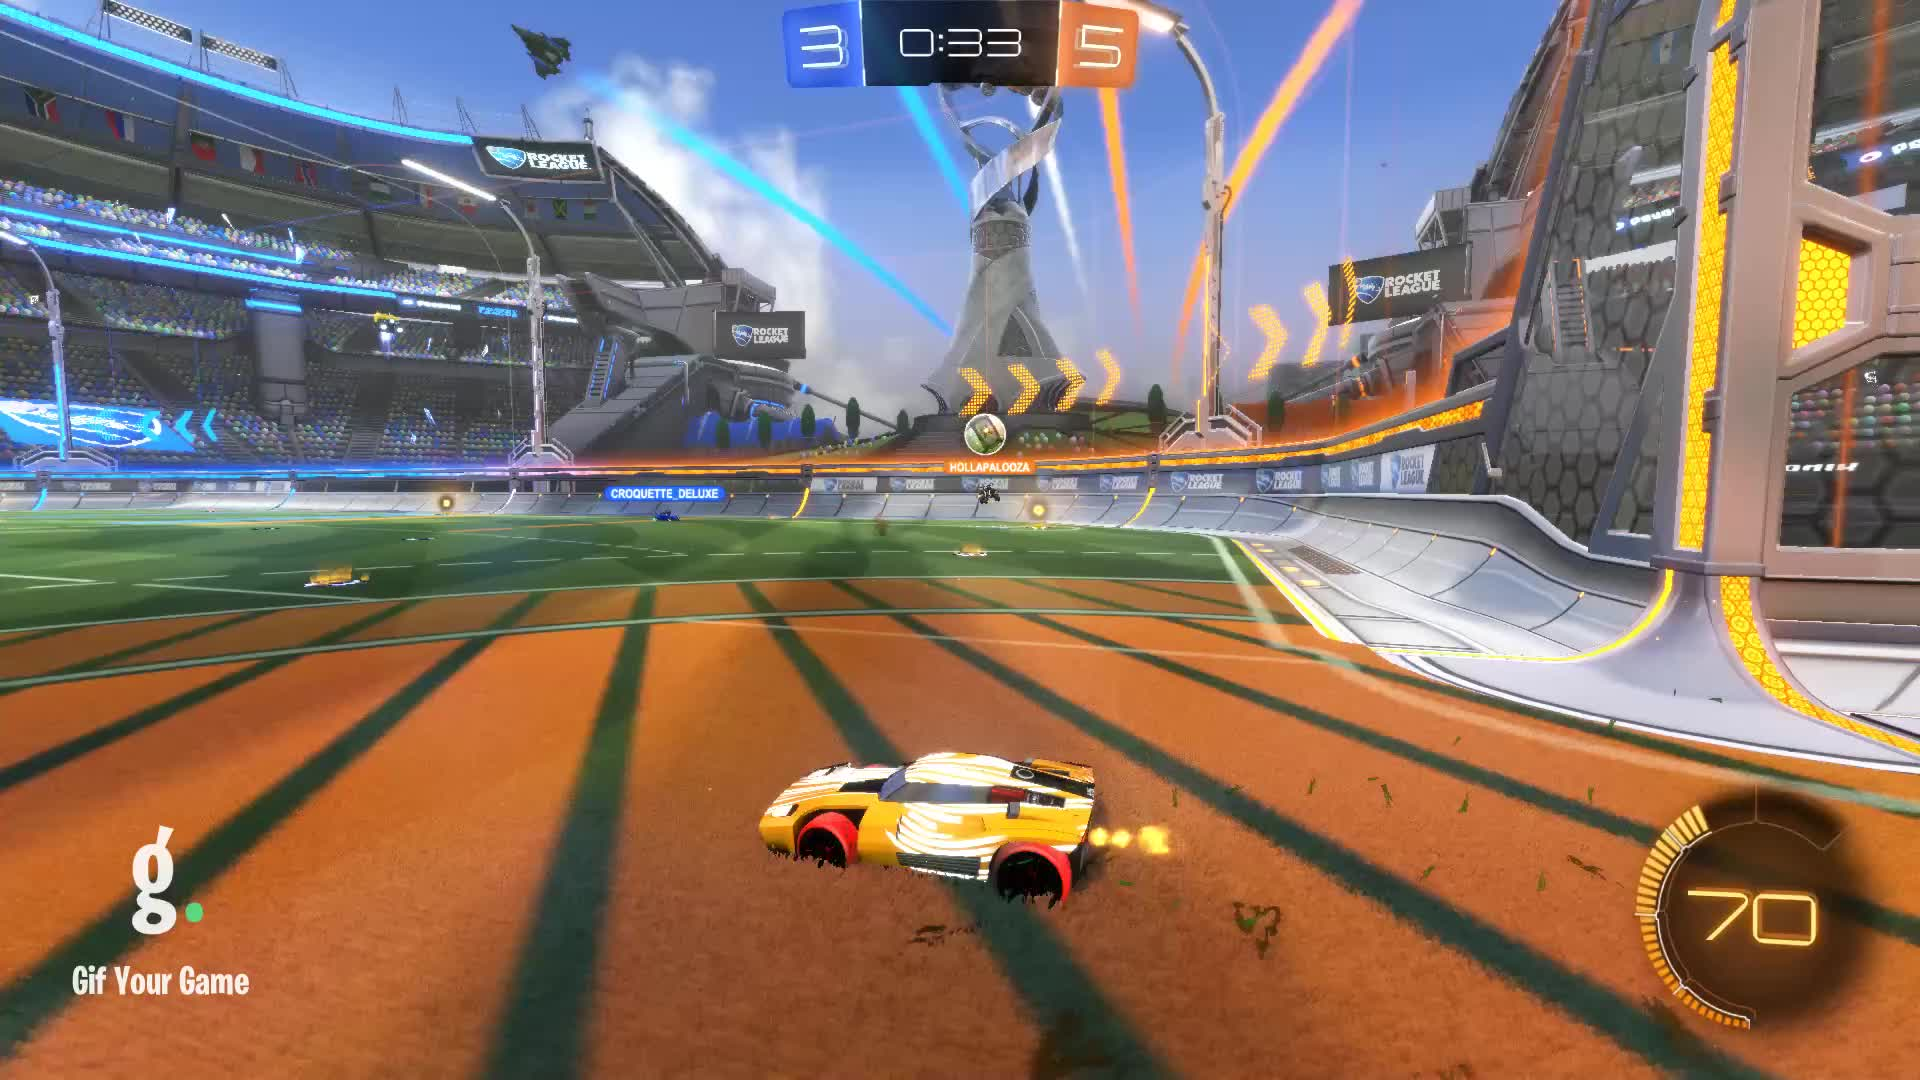 Alkya, Gif Your Game, GifYourGame, Goal, Rocket League, RocketLeague, Goal 9: Alkya GIFs